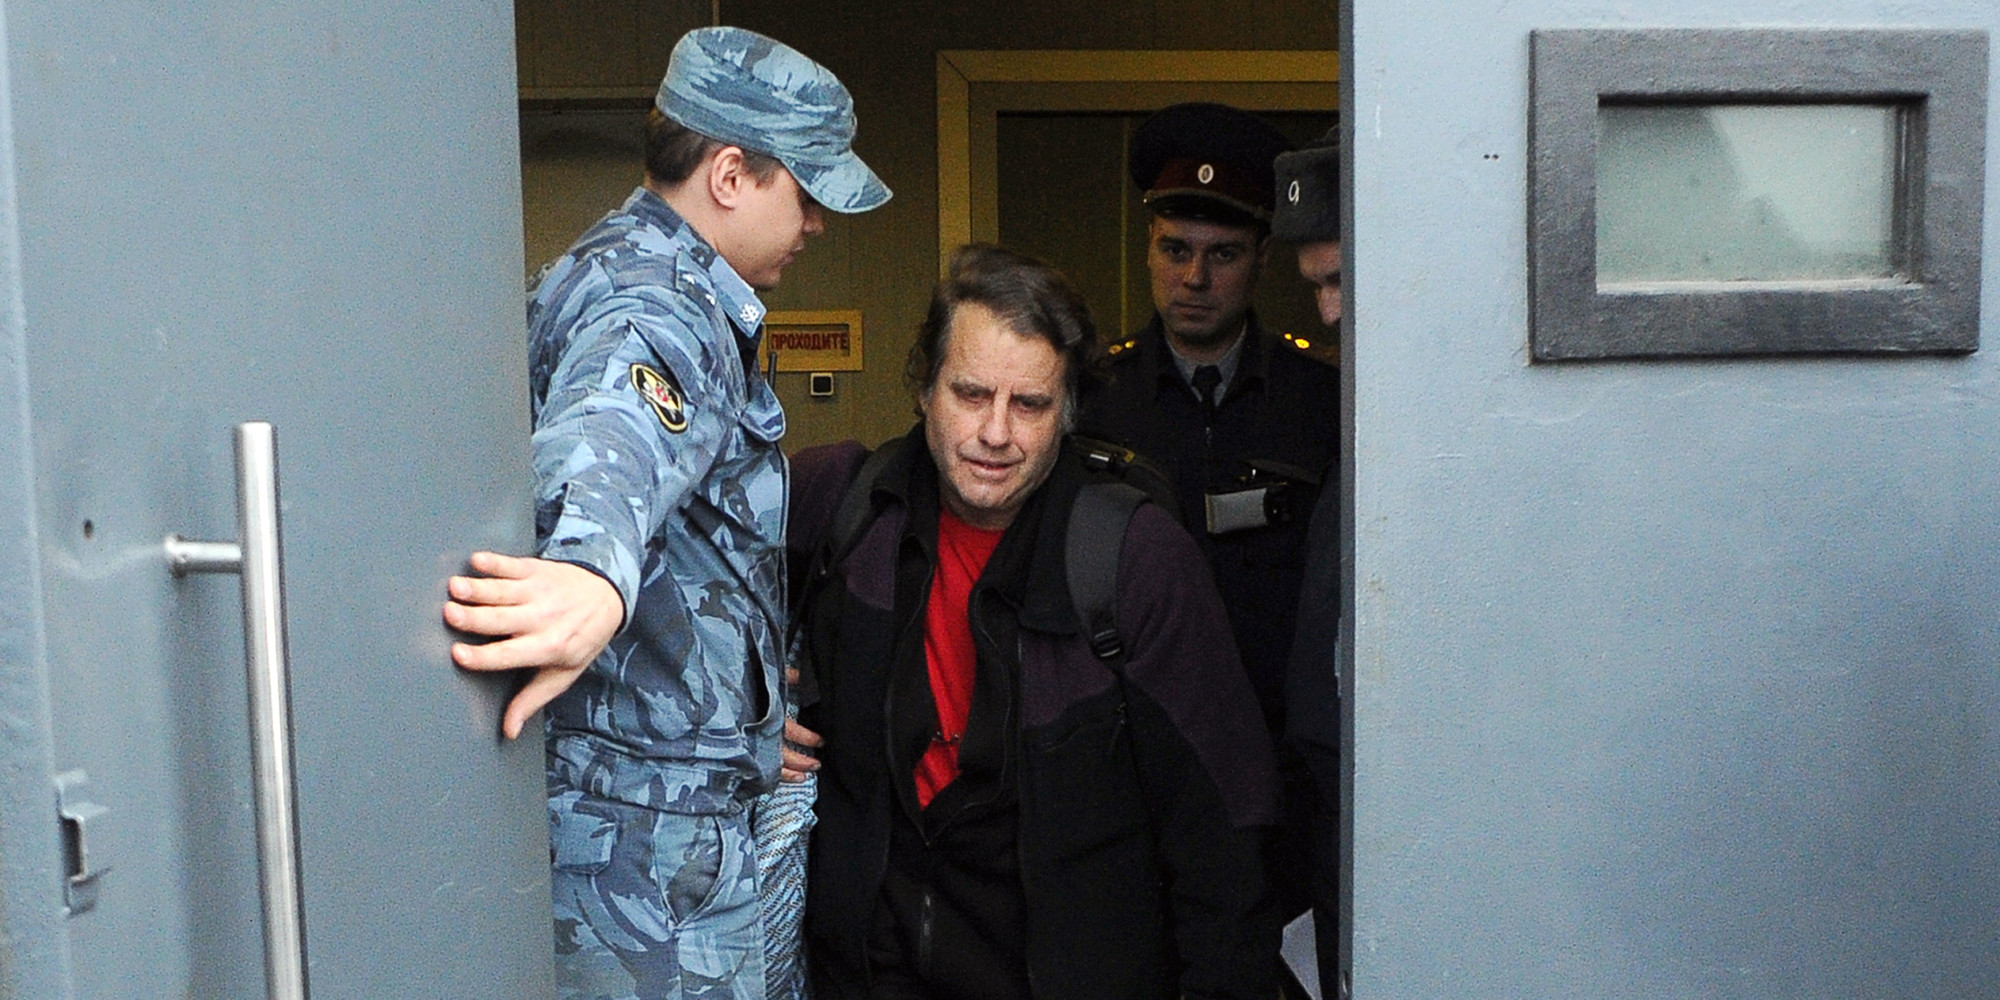 American Jailed In Russia For Protesting Climate Change Won't Back Down